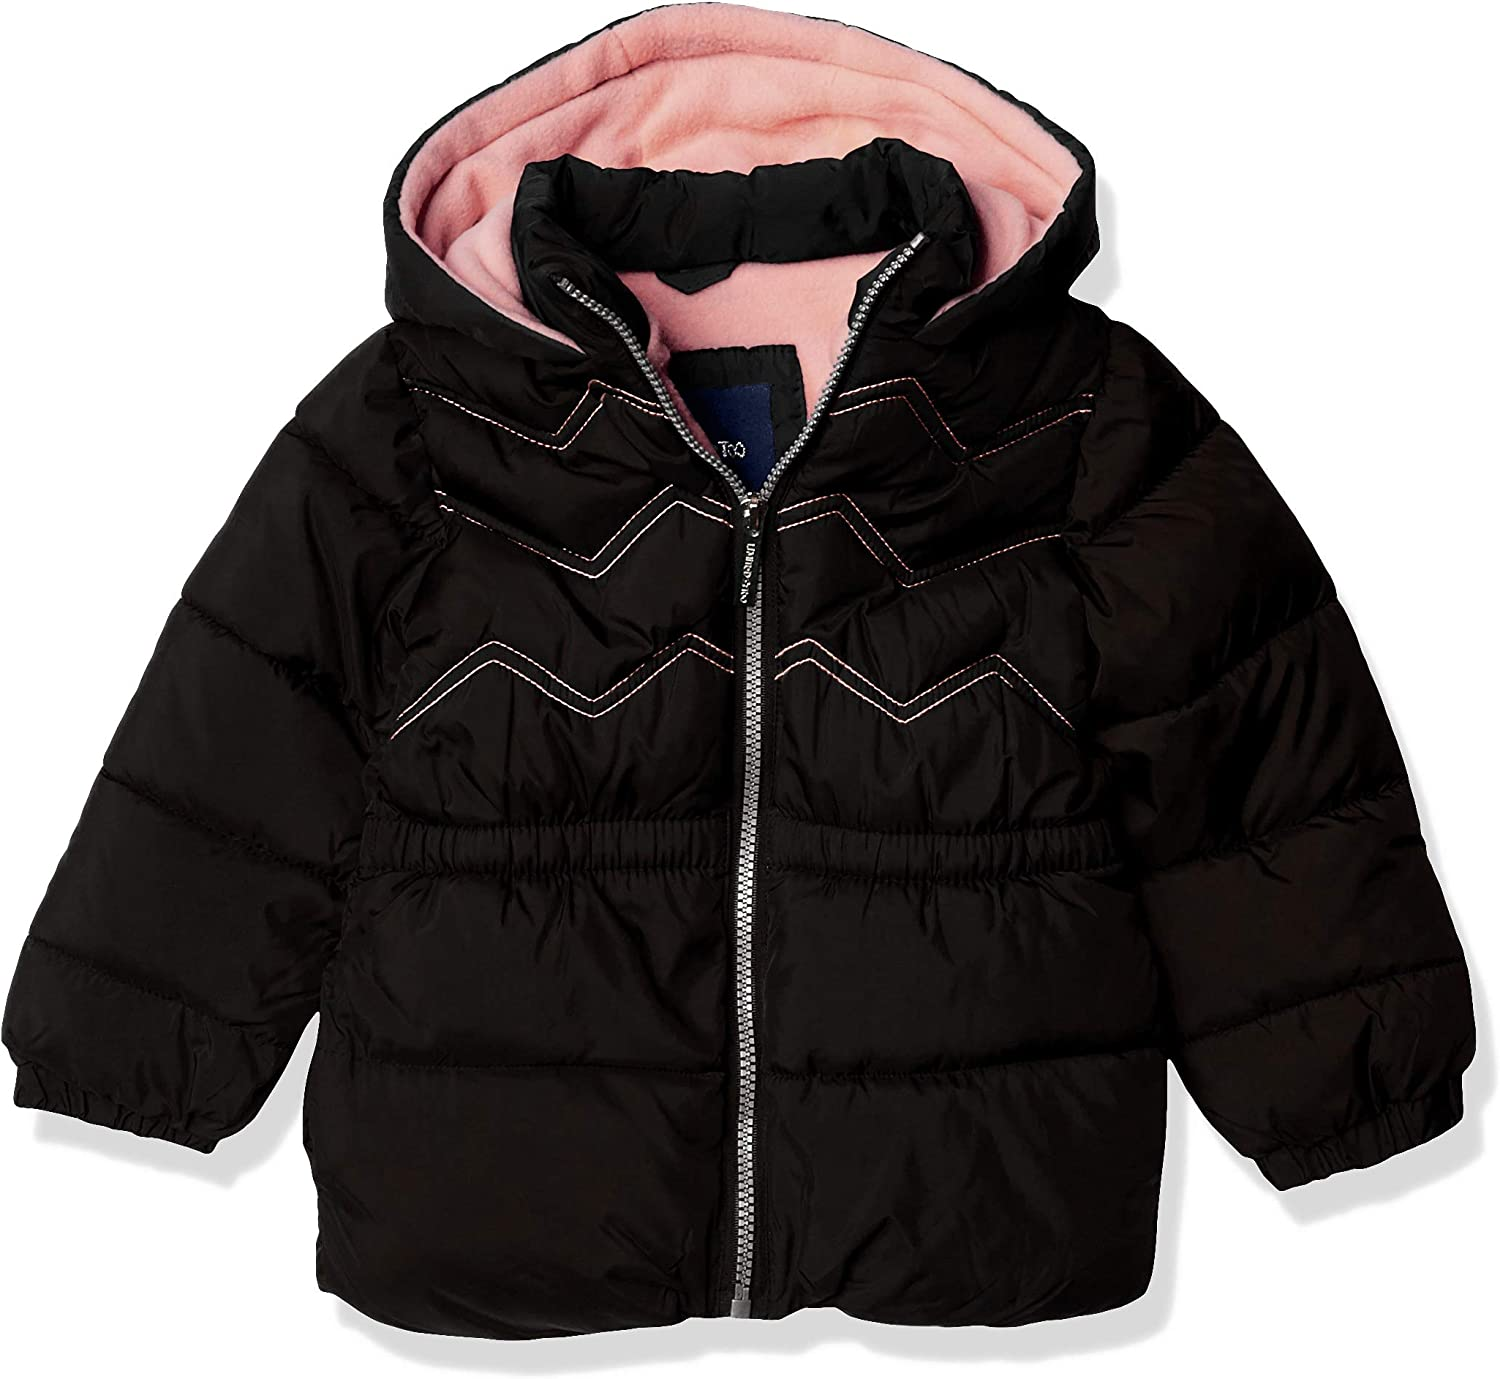 Limited Too Girls' Don't miss the campaign Jacket Topics on TV Puffer